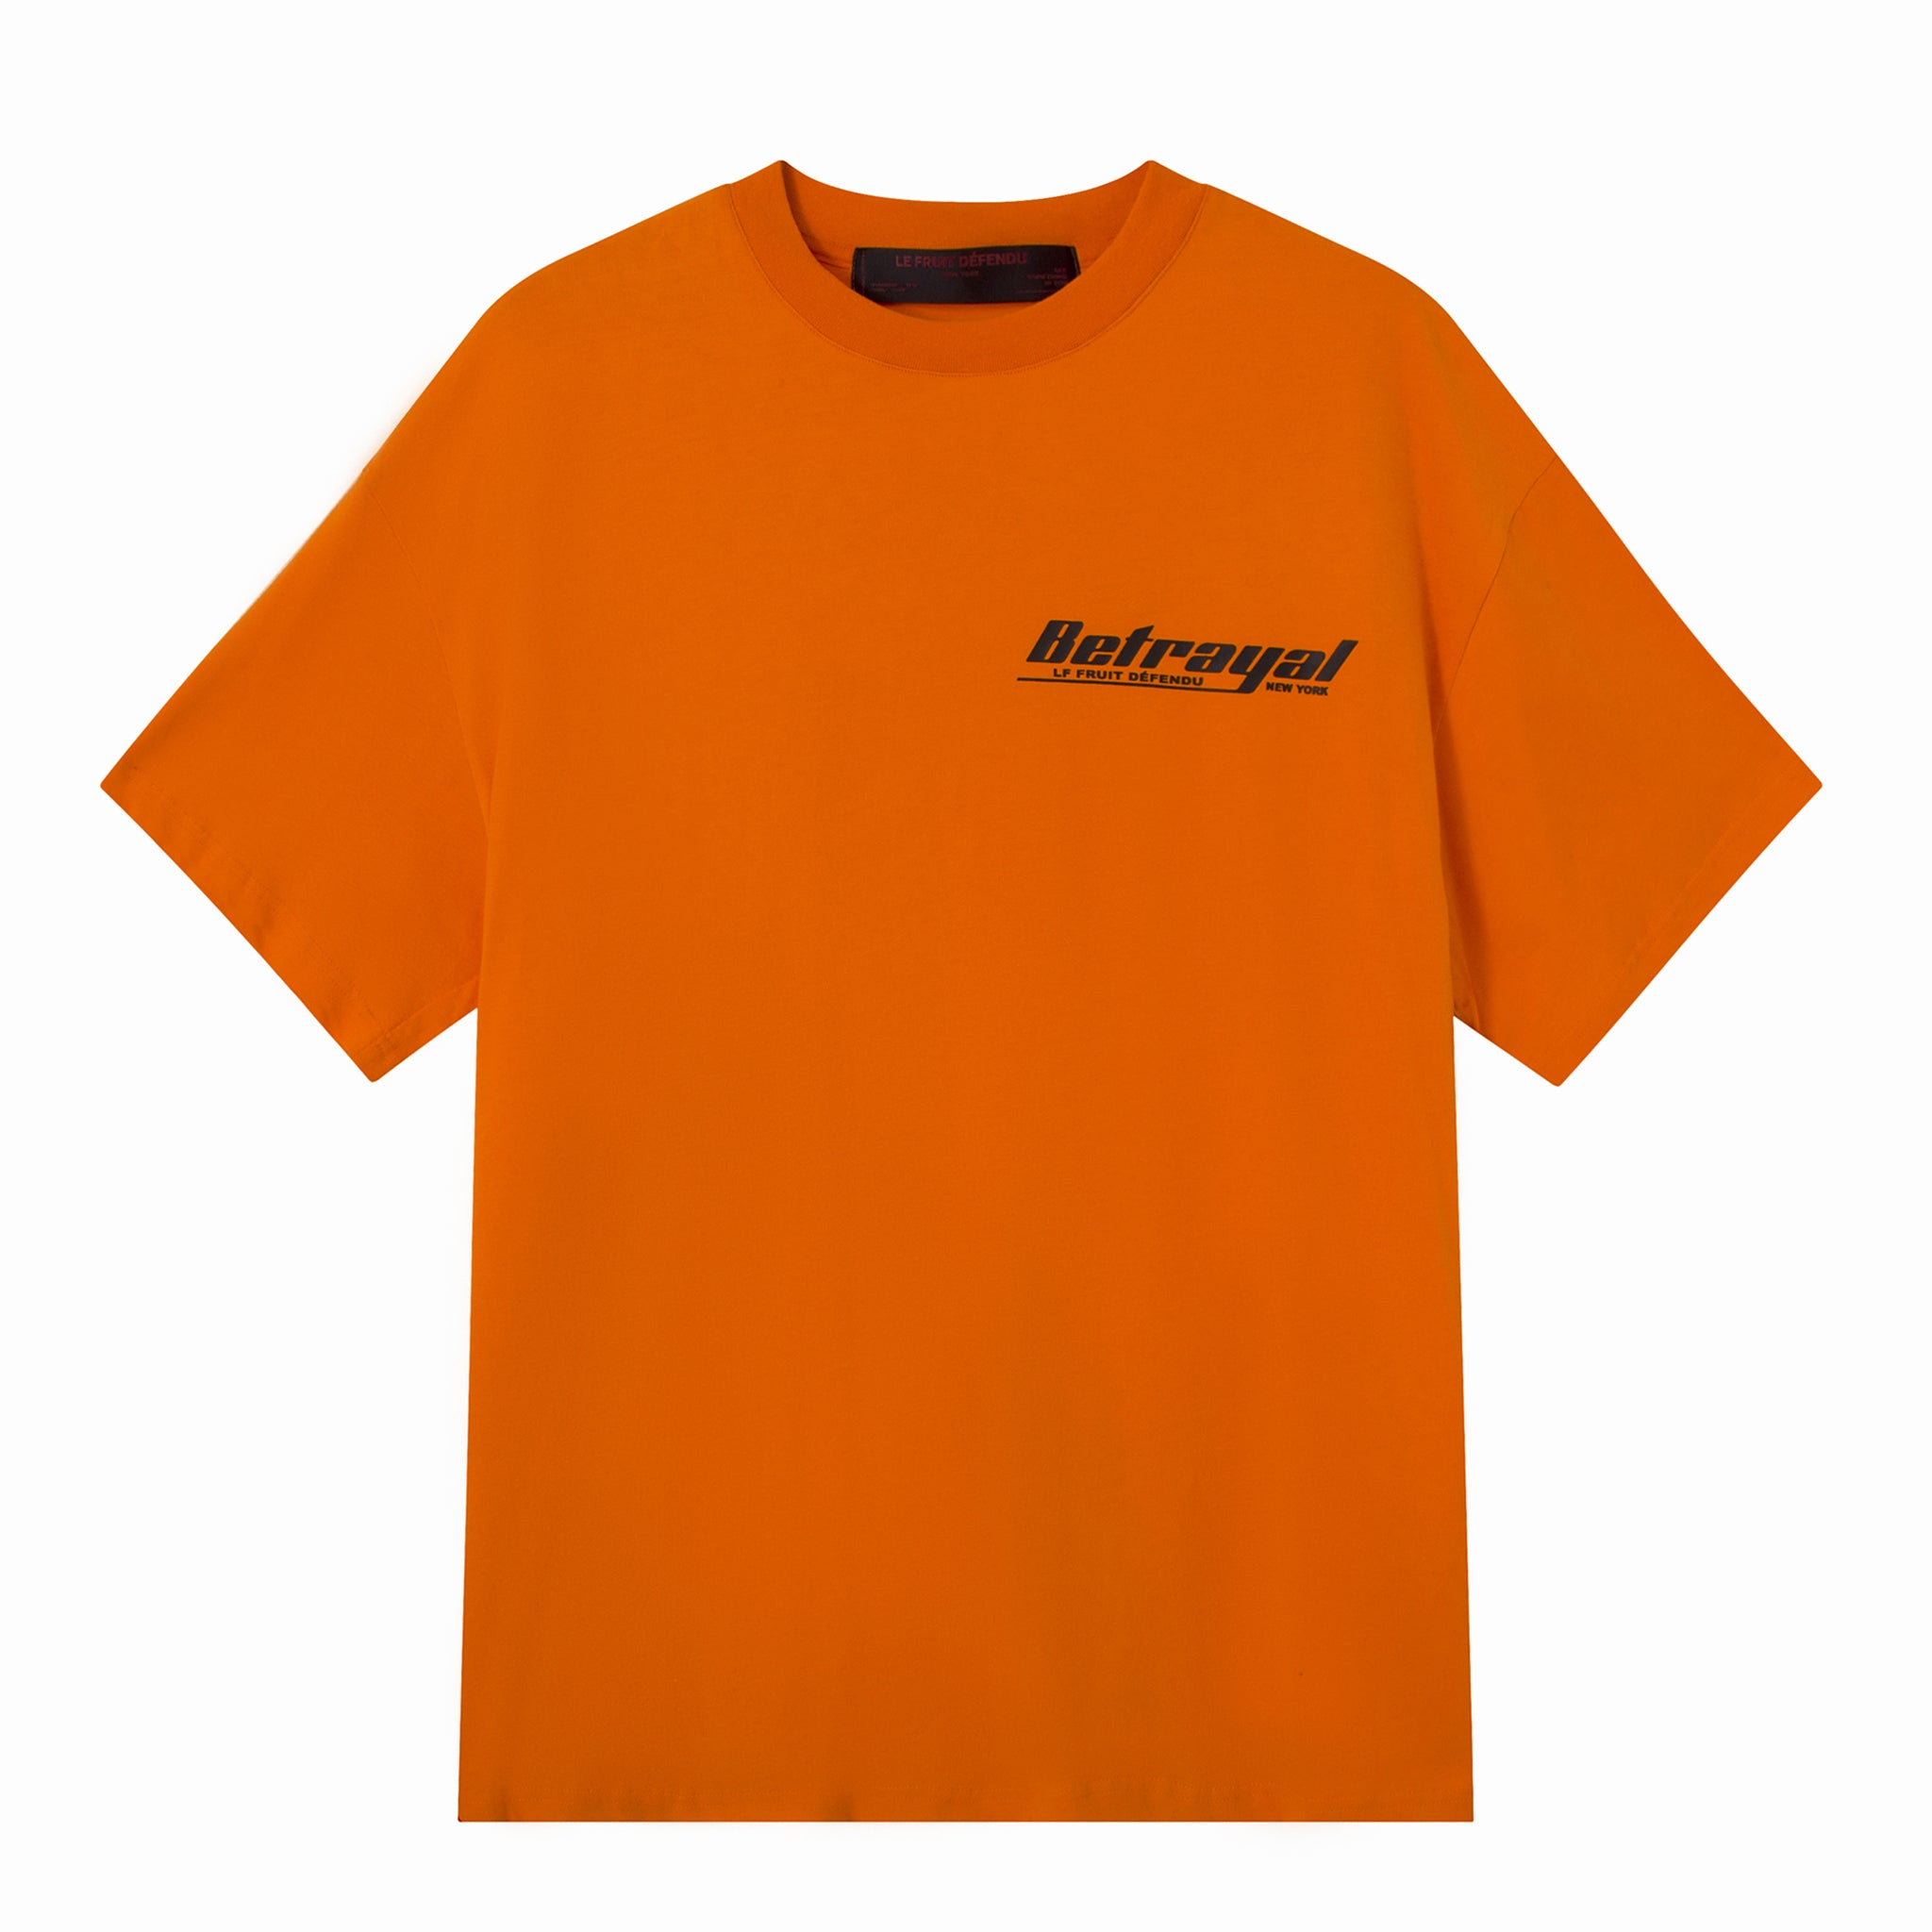 Load image into Gallery viewer, LFD Betrayal T-shirt - Orange